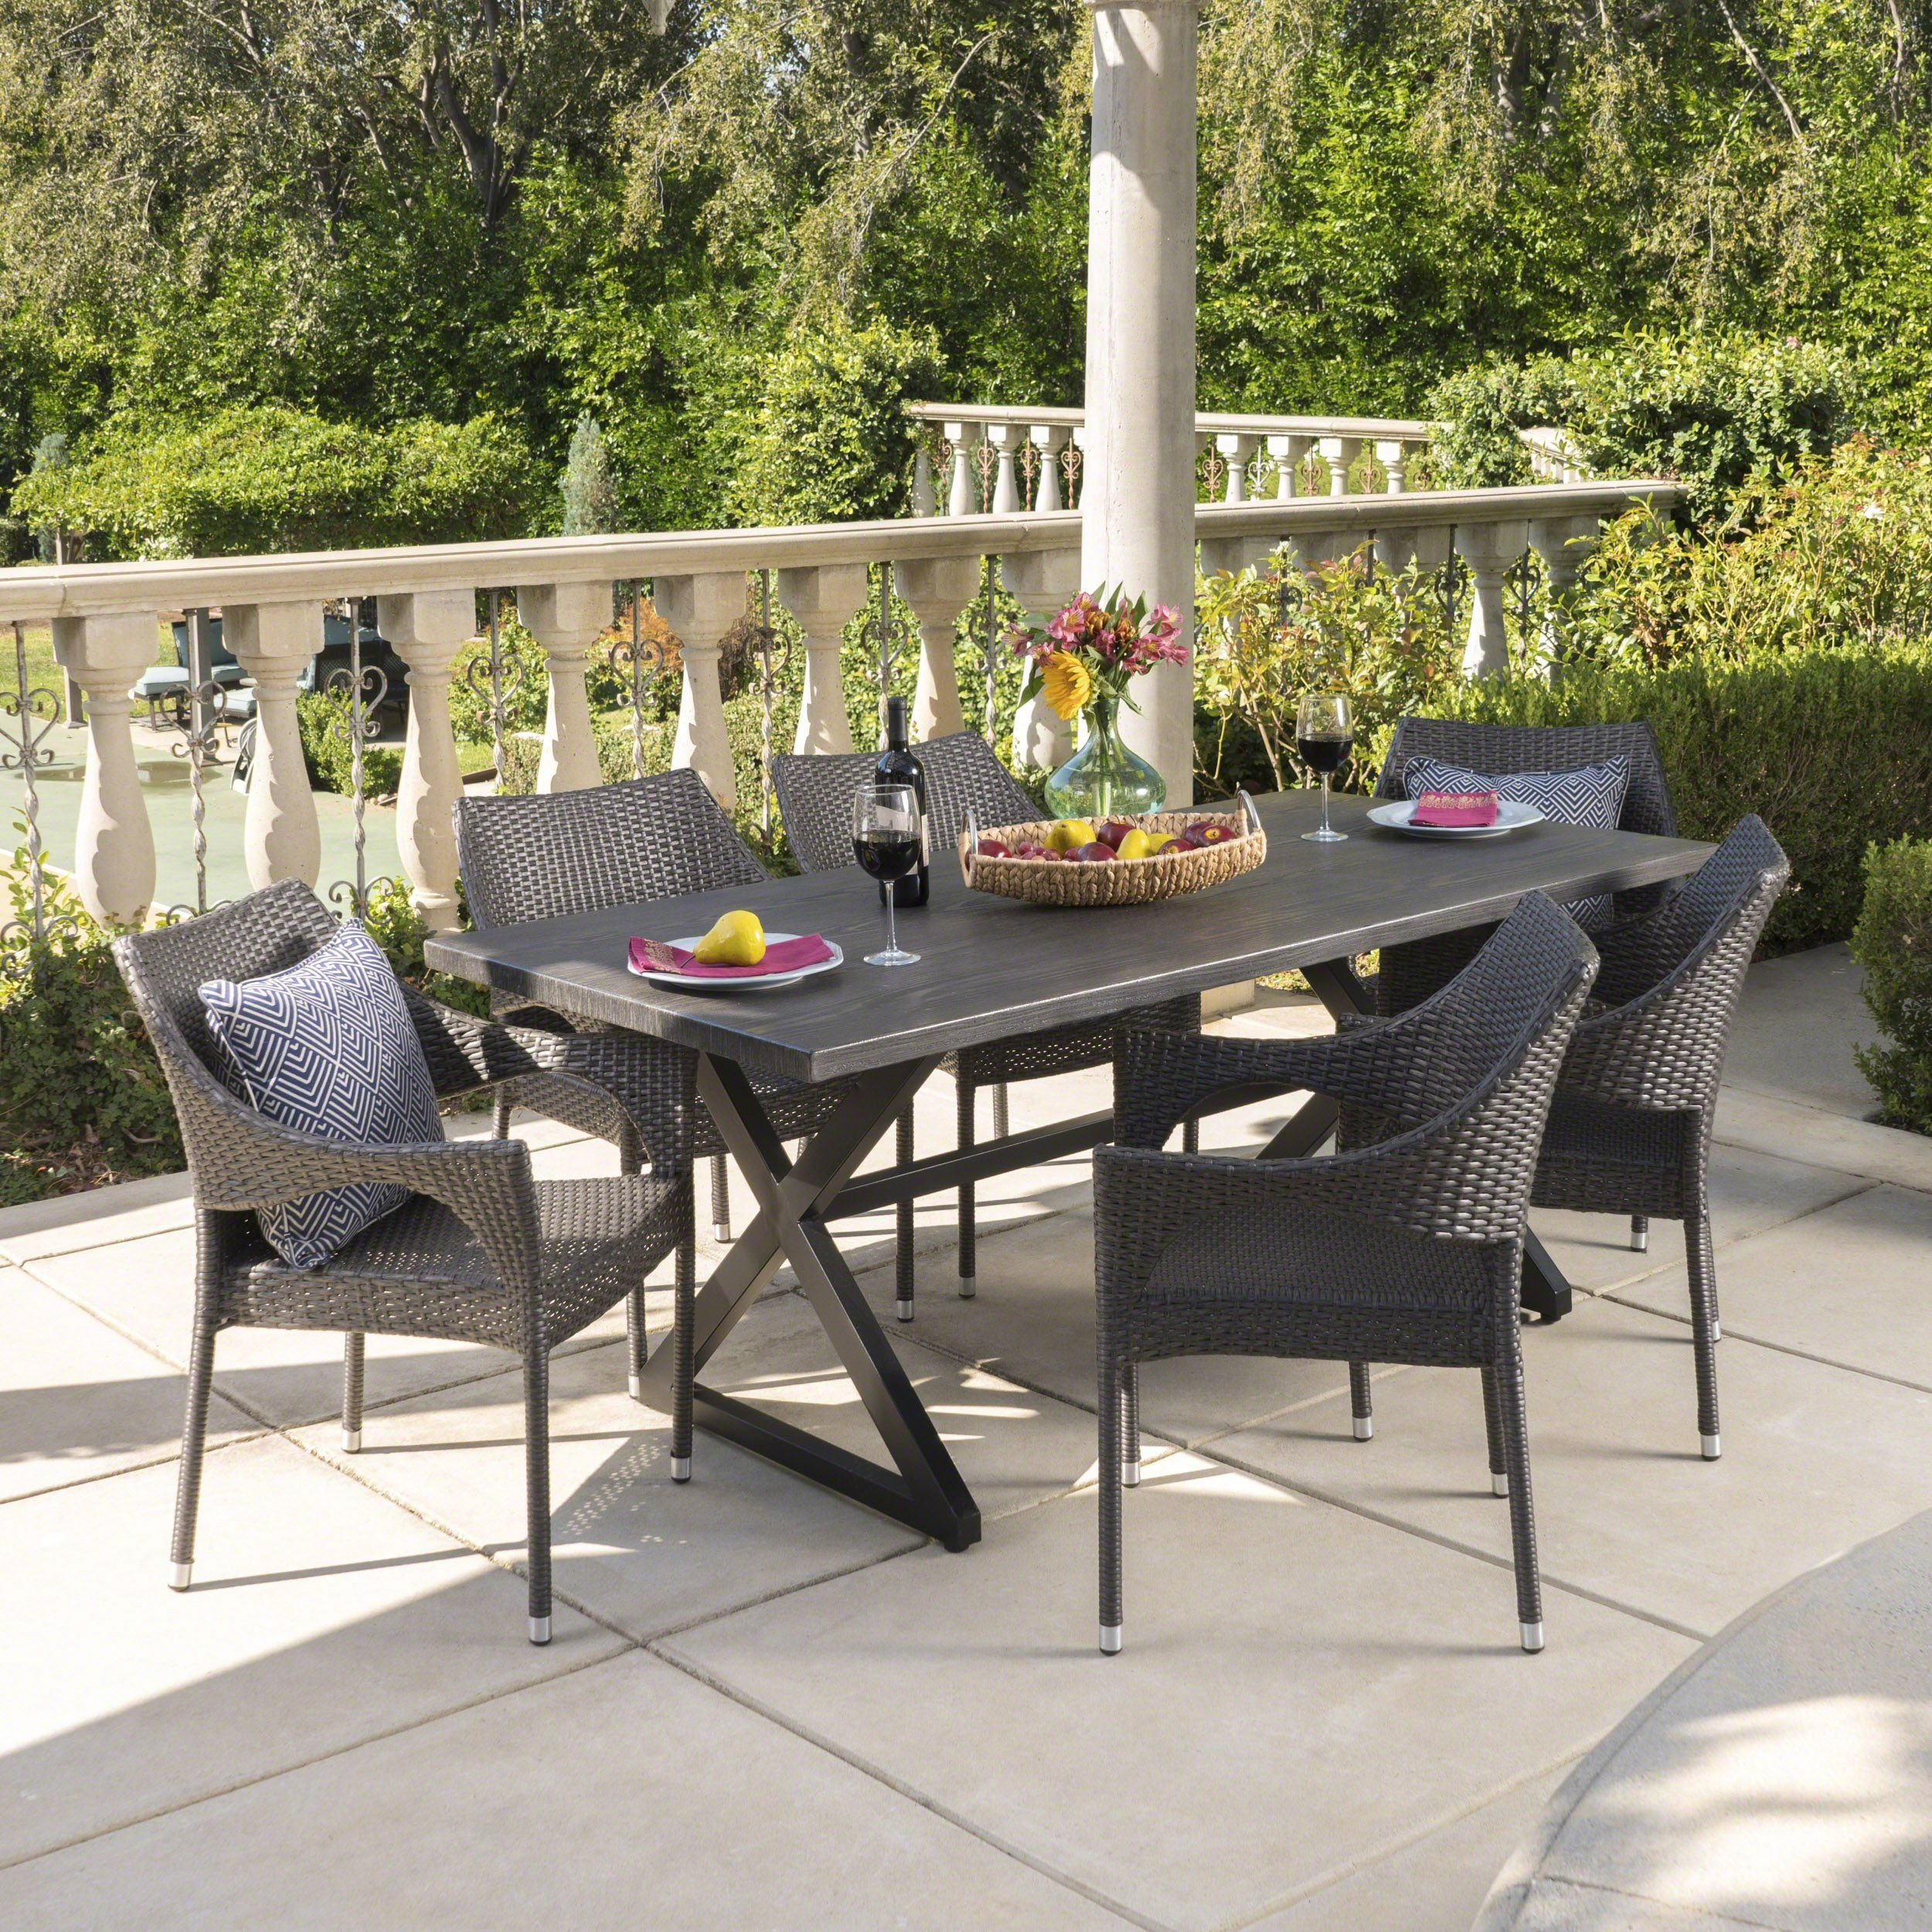 Graywood Outdoor 7 Piece Wicker Dining Set With